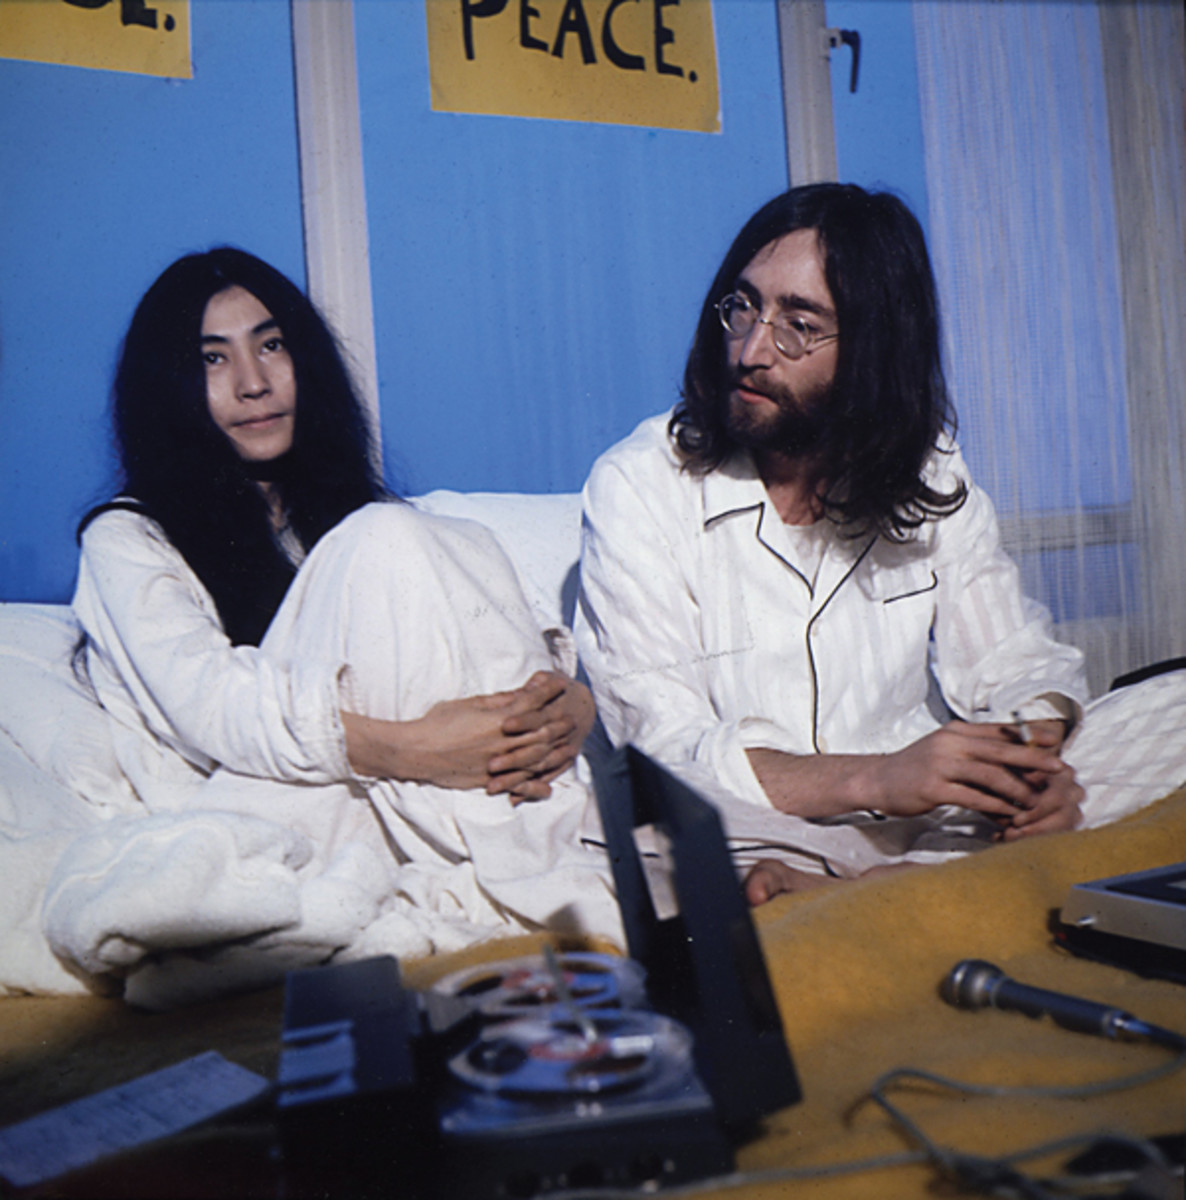 LENNON and Ono's activism would reach its peak in 1972. Photo courtesy of Laurens Van Houten/Frank White Photo Agency